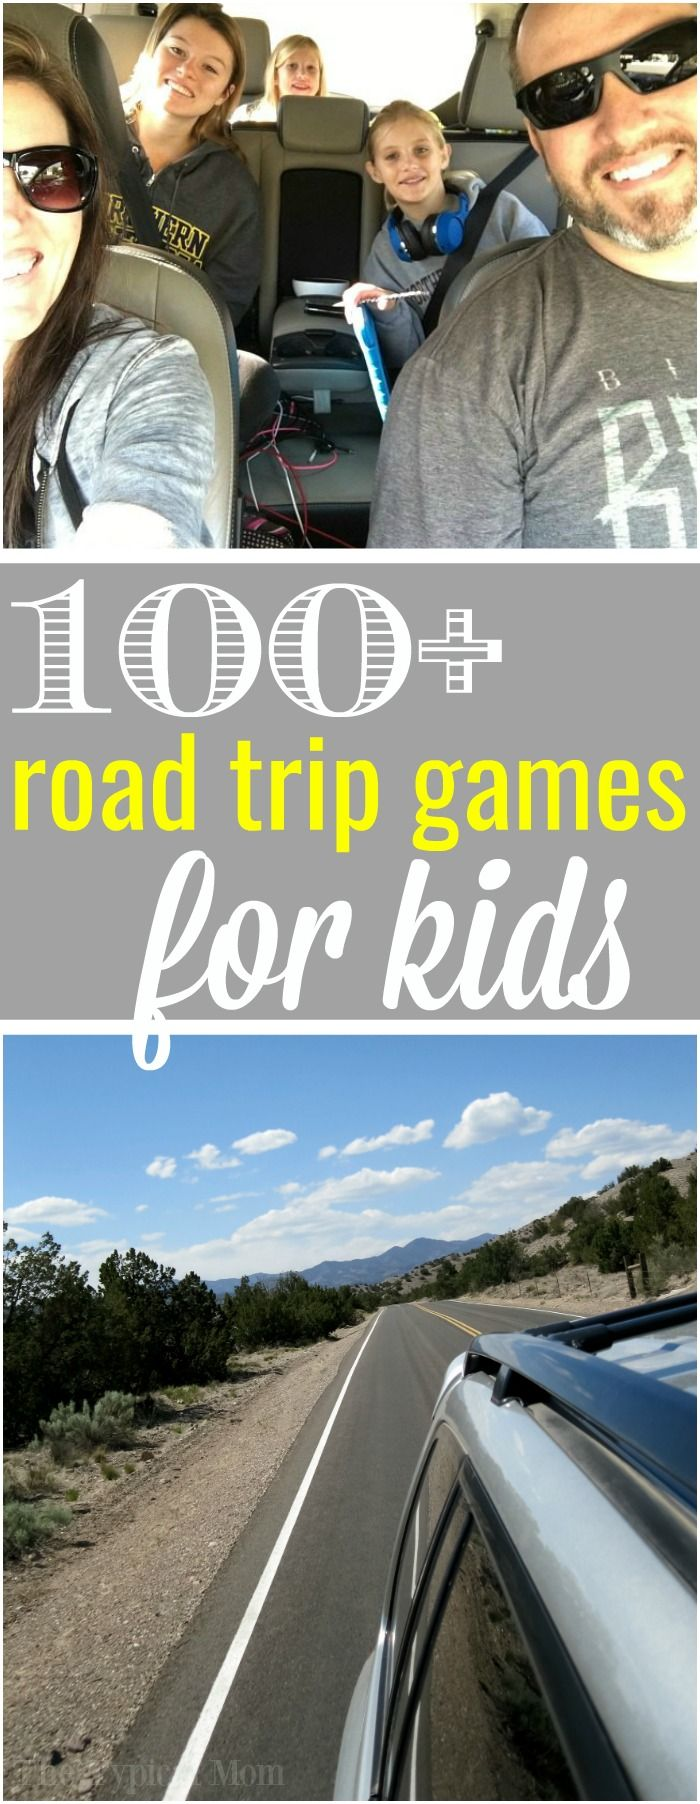 "100+ road trip games for kids to avoid ""are we there yet?"" Fun car games and activities that will make you laugh and the trip more enjoyable for everyone. via @thetypicalmom"